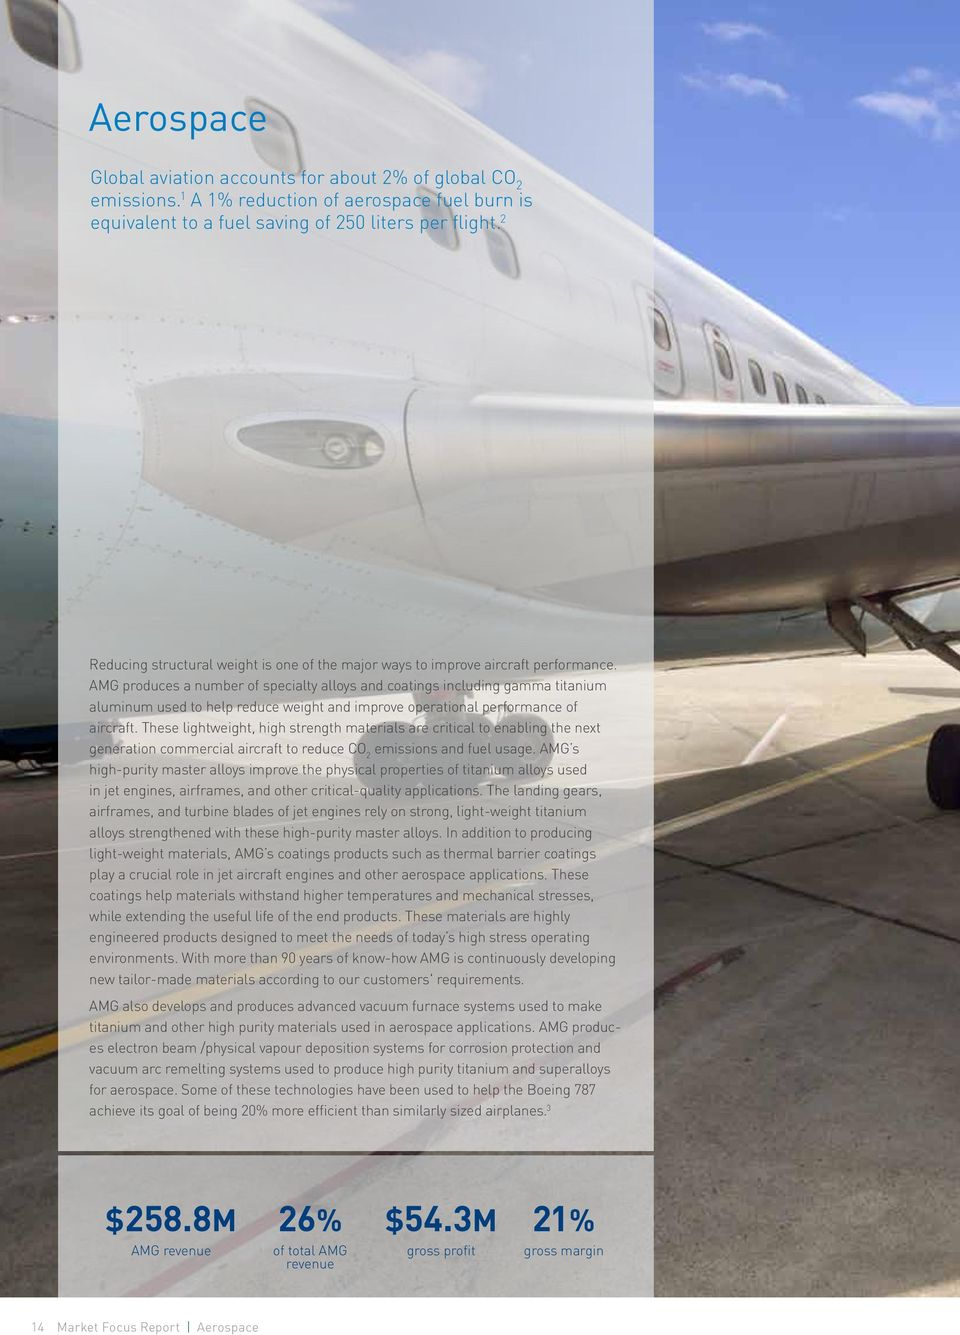 AMG produces a number of specialty alloys and coatings including gamma titanium aluminum used to help reduce weight and improve operational performance of aircraft.